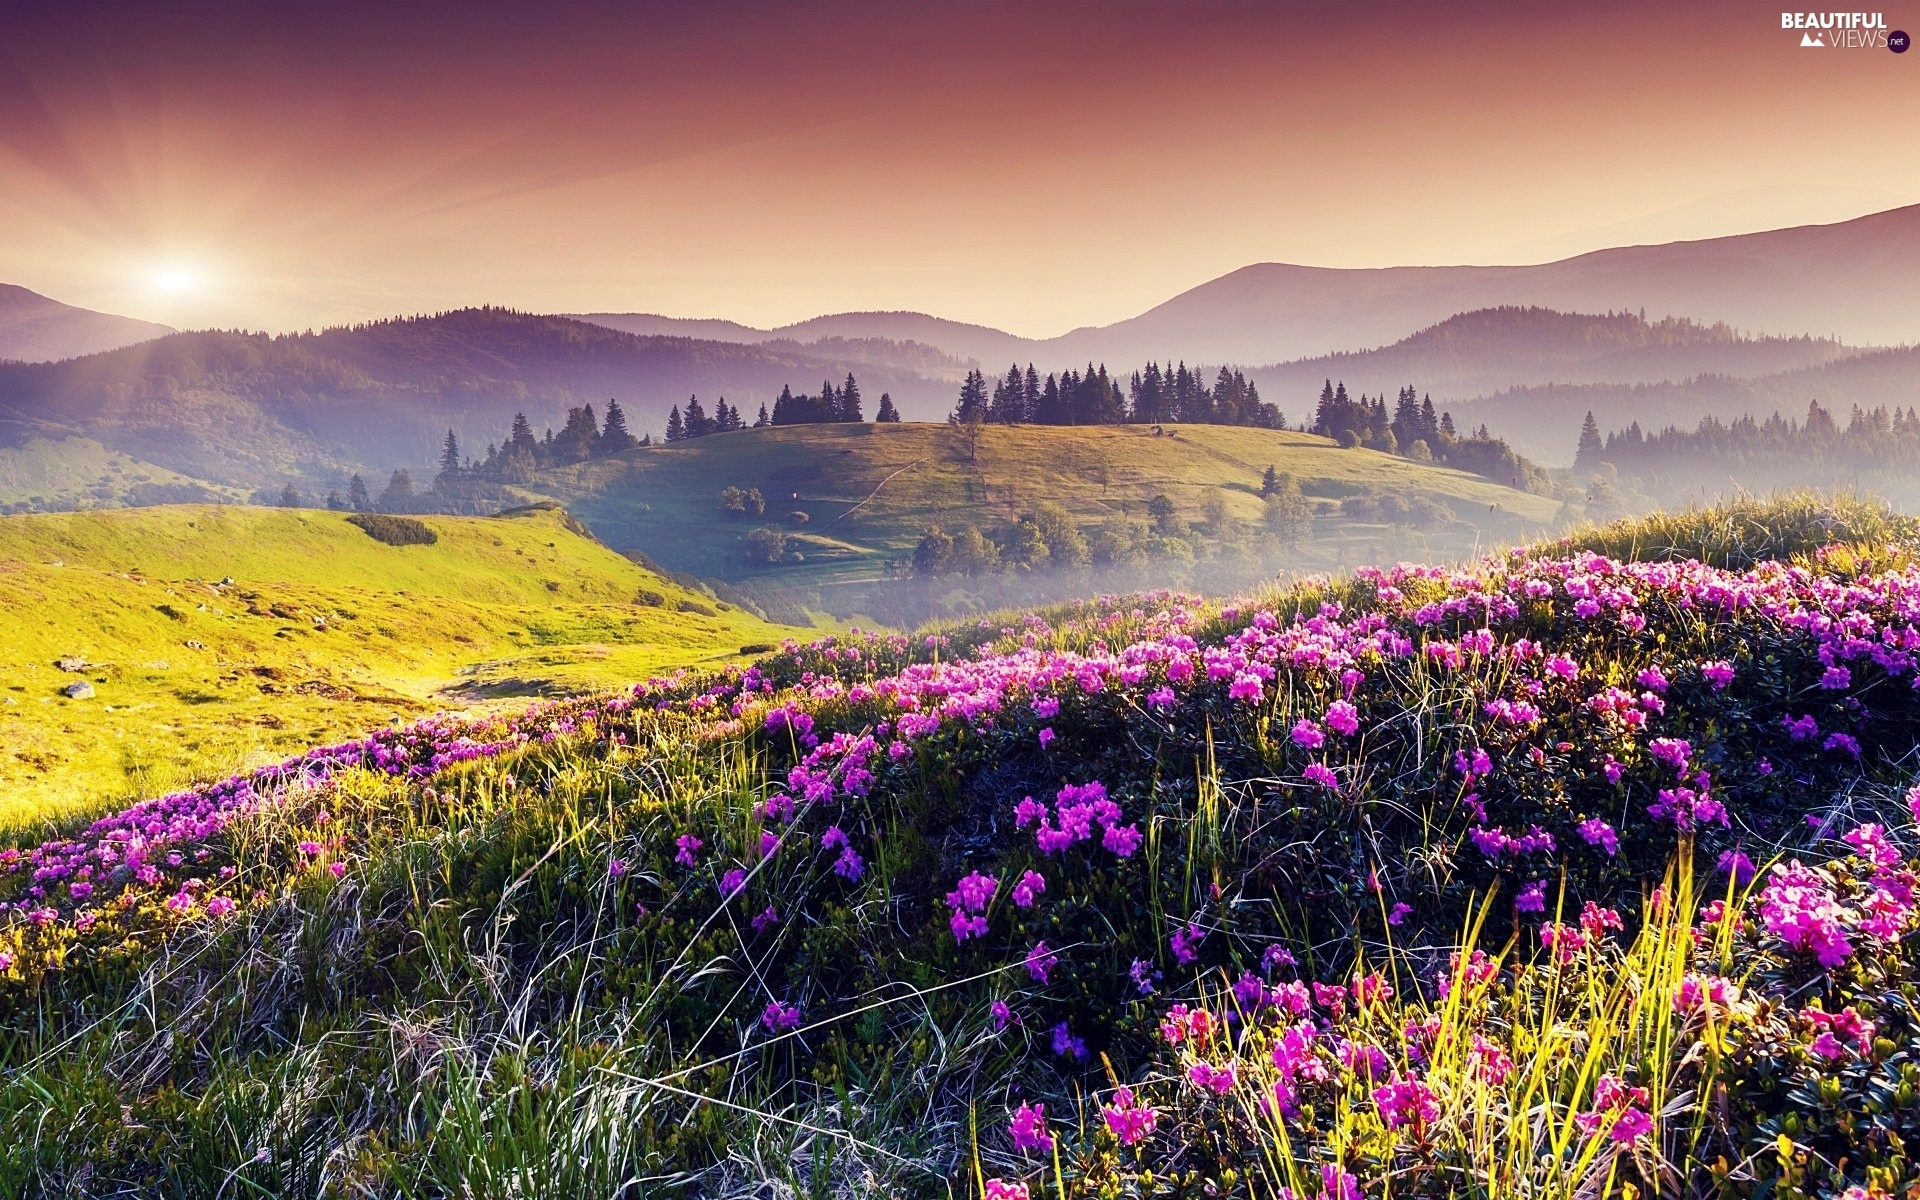 Meadow, Mountains, Sunrise, Flowers